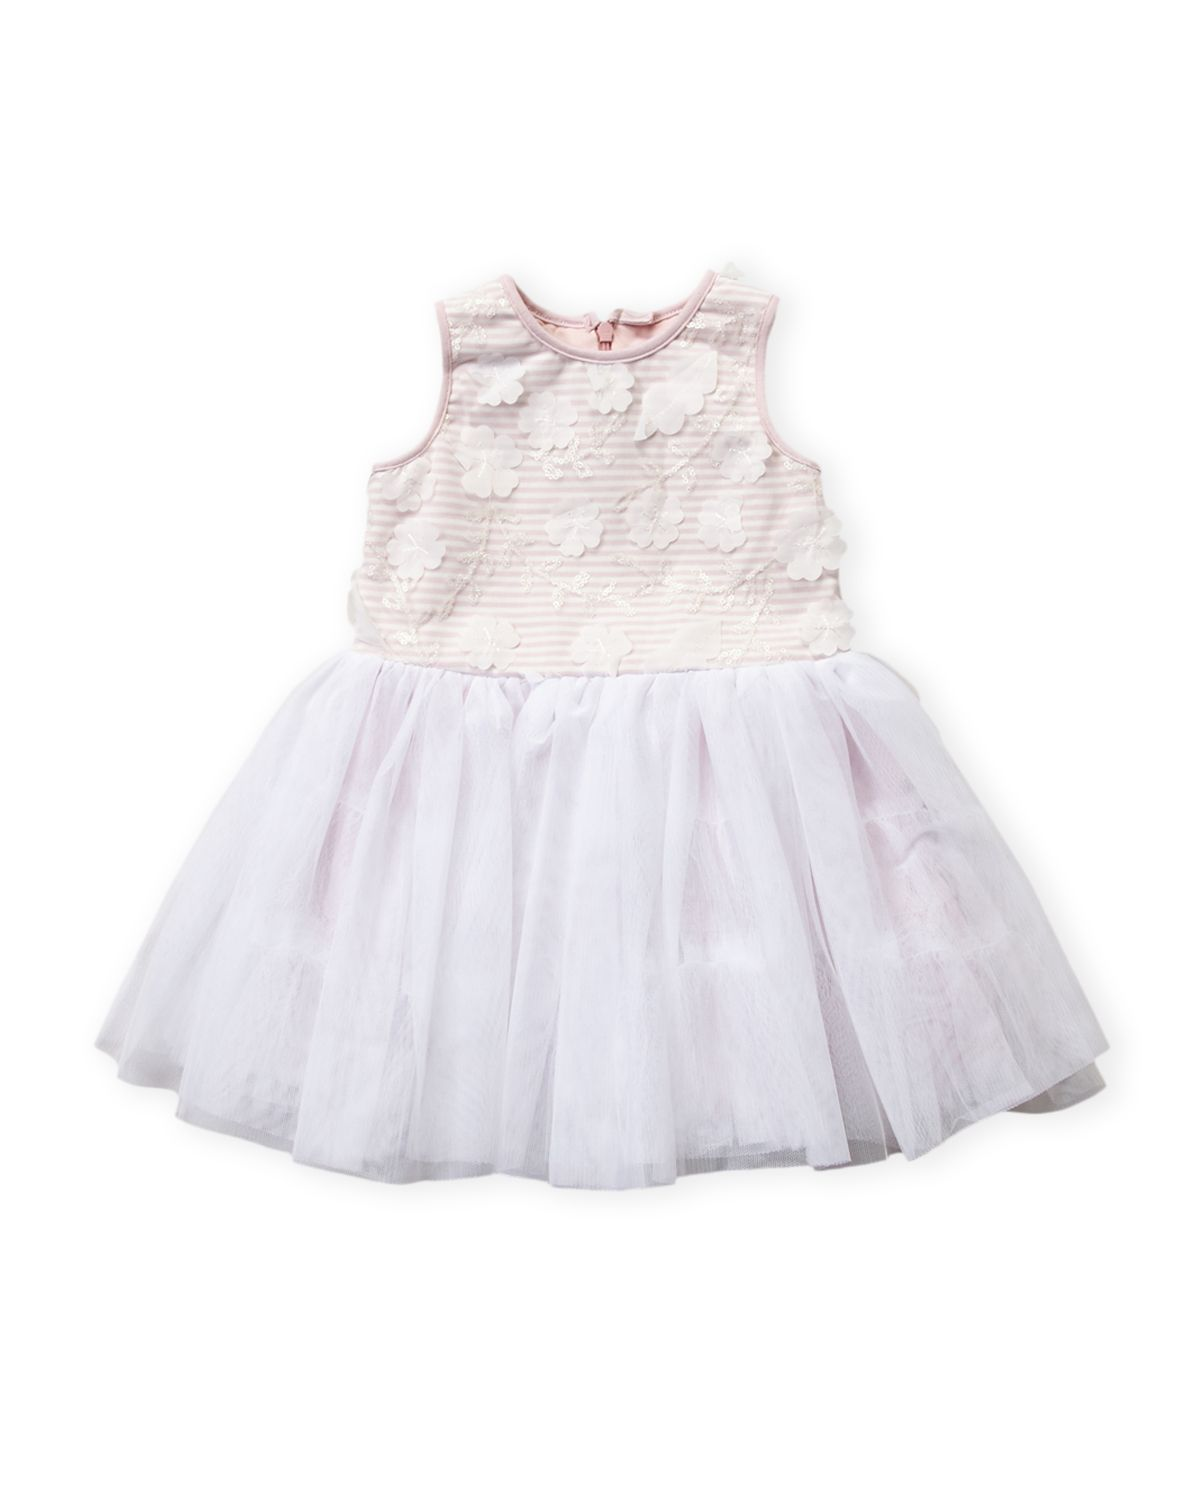 4ecc2629575 Pippa   Julie (Toddler Girls) Pink   White Floral Tutu Dress ...